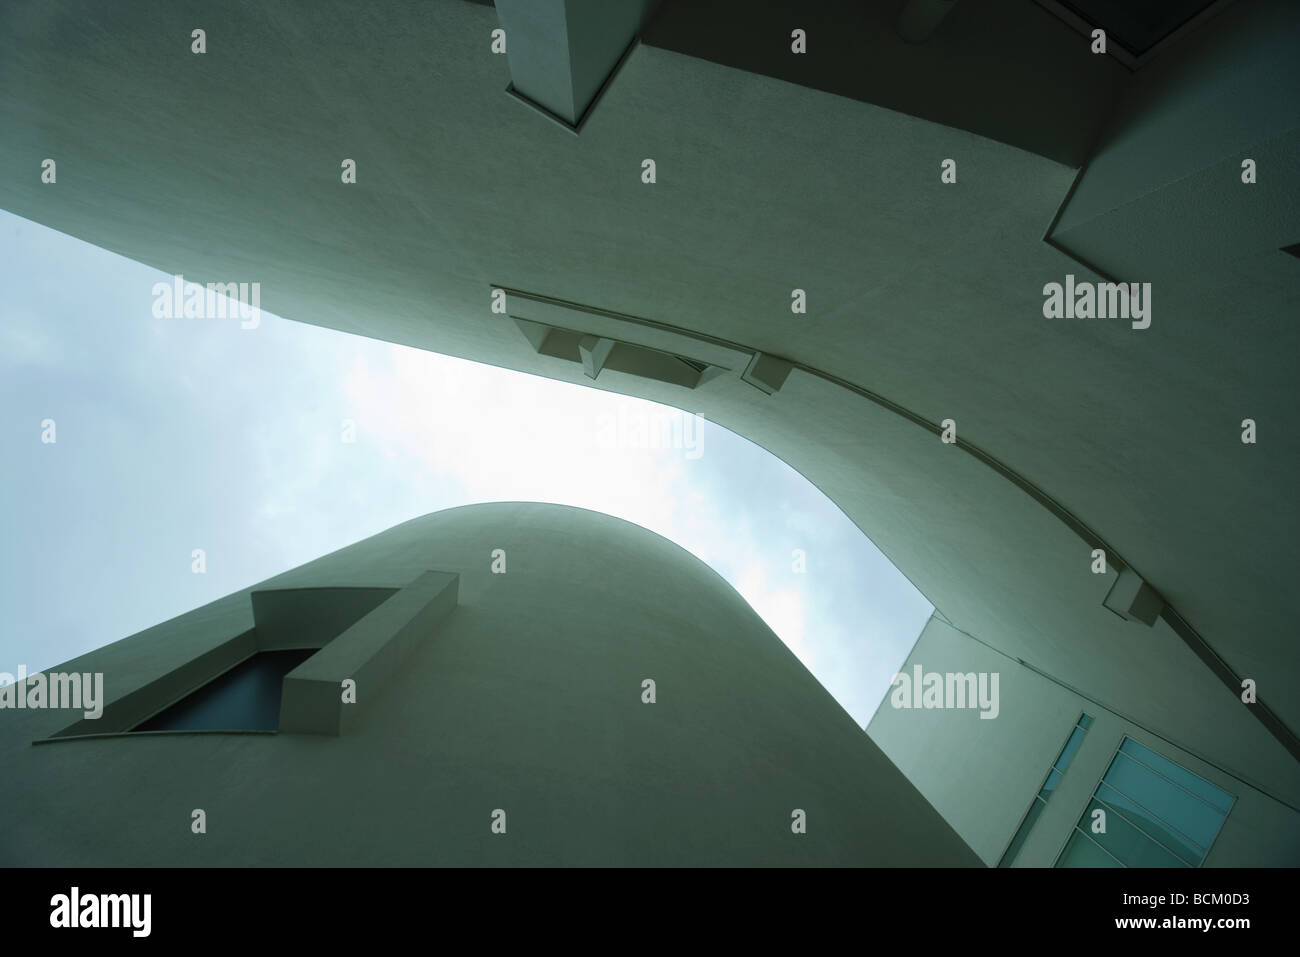 Architectural shot, curved buildings, view from directly below - Stock Image